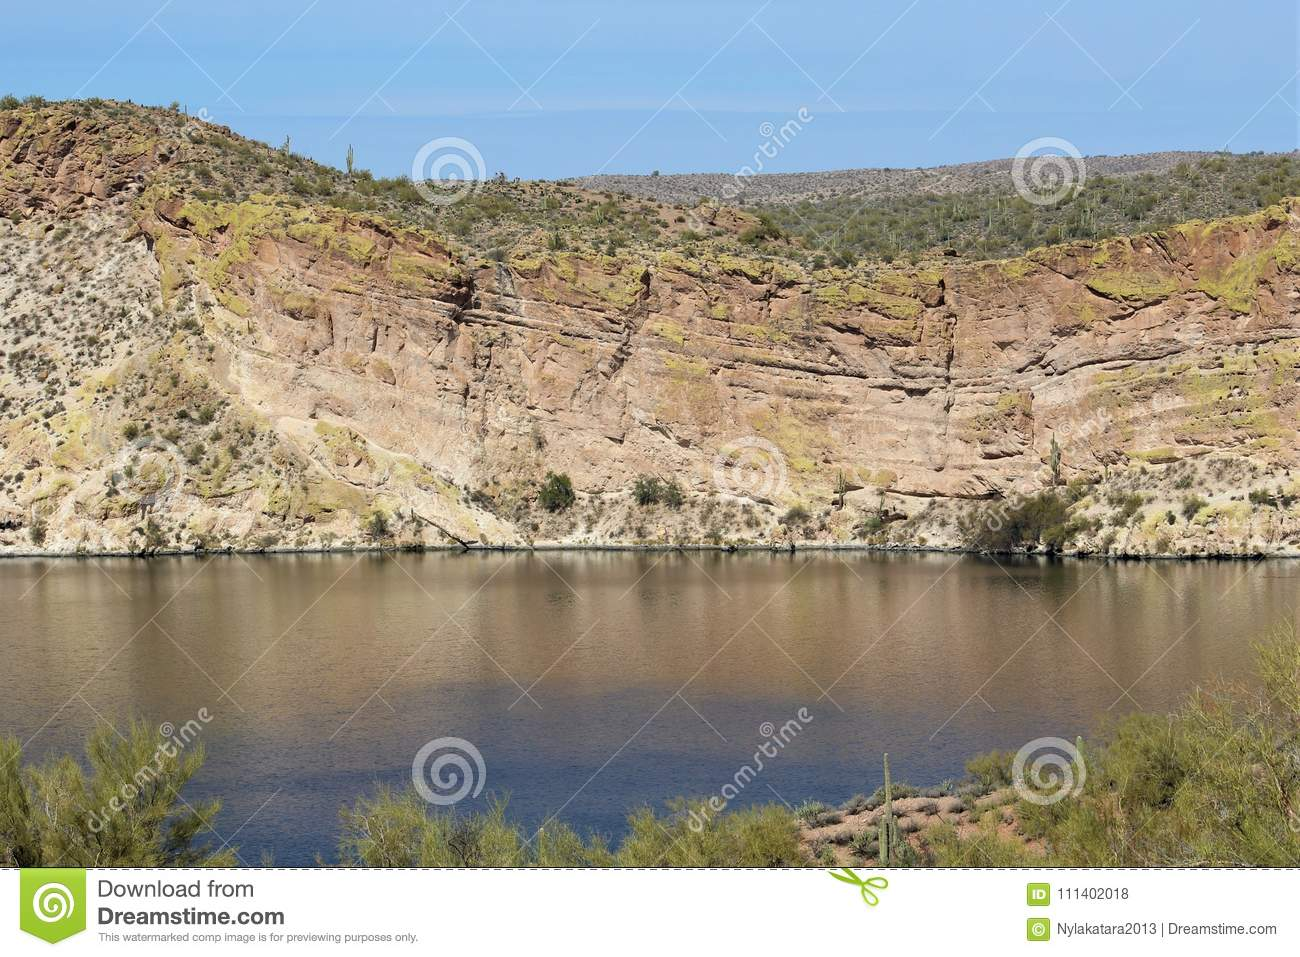 Download Butcher Jones Beach Arizona, Tonto National Forest Stock Photo - Image of national, resources: 111402018